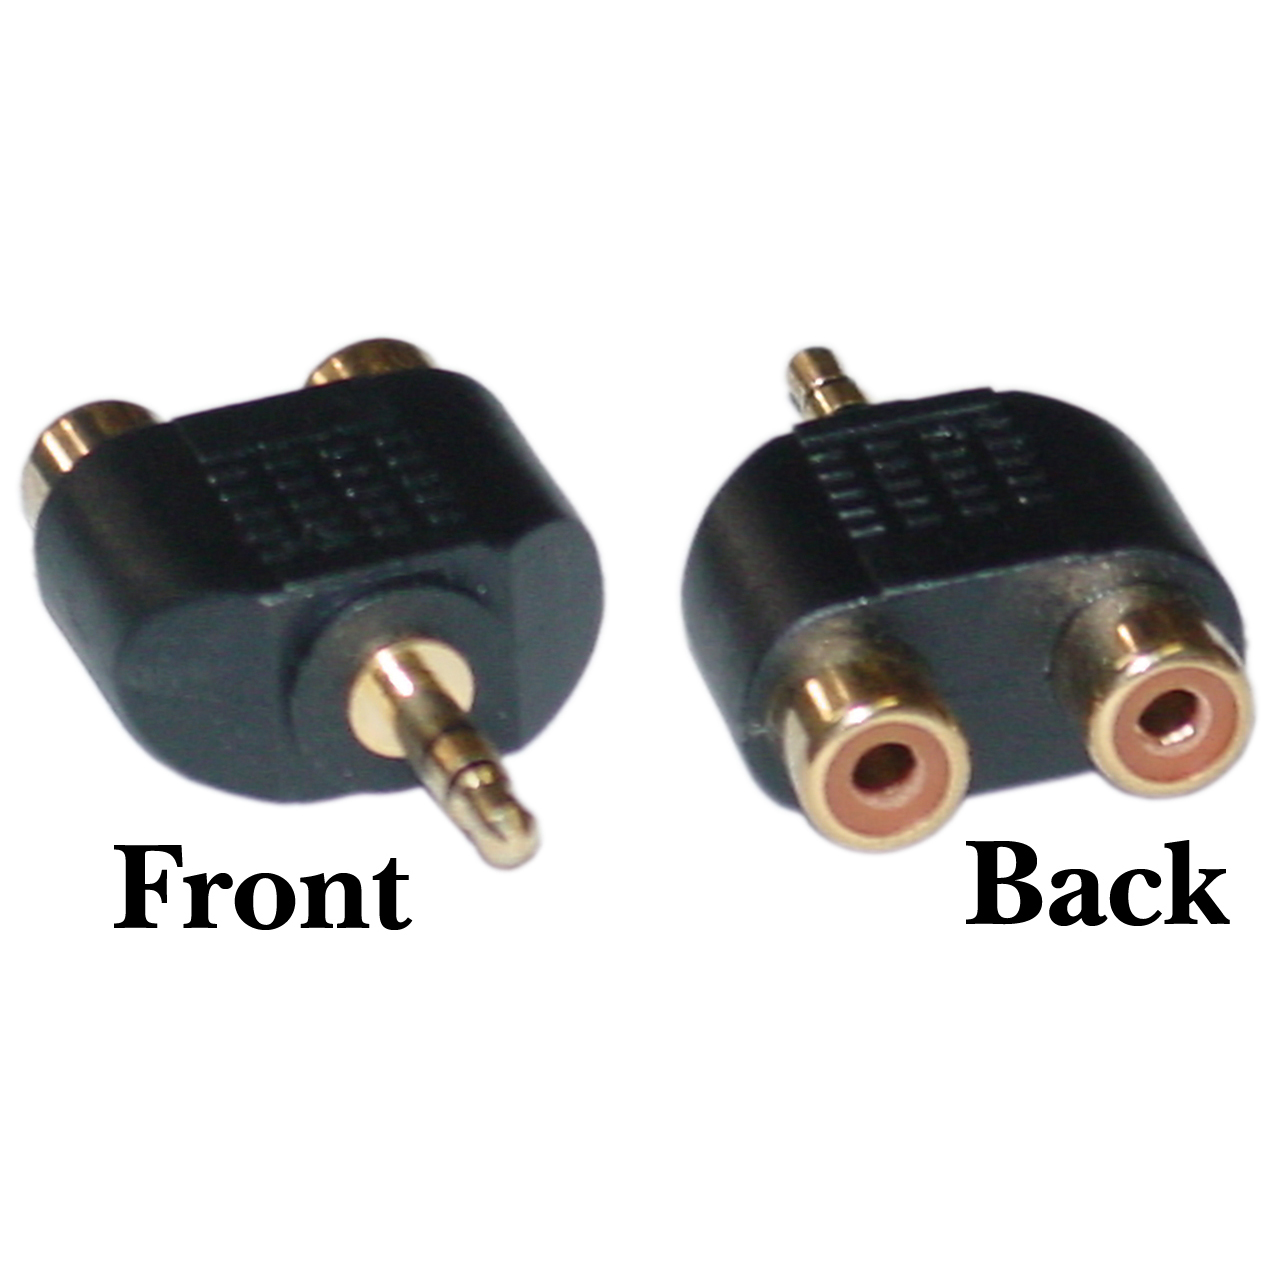 Macgregor 26m 34833 furthermore Best Of Gary Larson further 96LED 24W VS B3 in addition Product info as well Coax In Hdmi Out. on digital optical cable vs hdmi